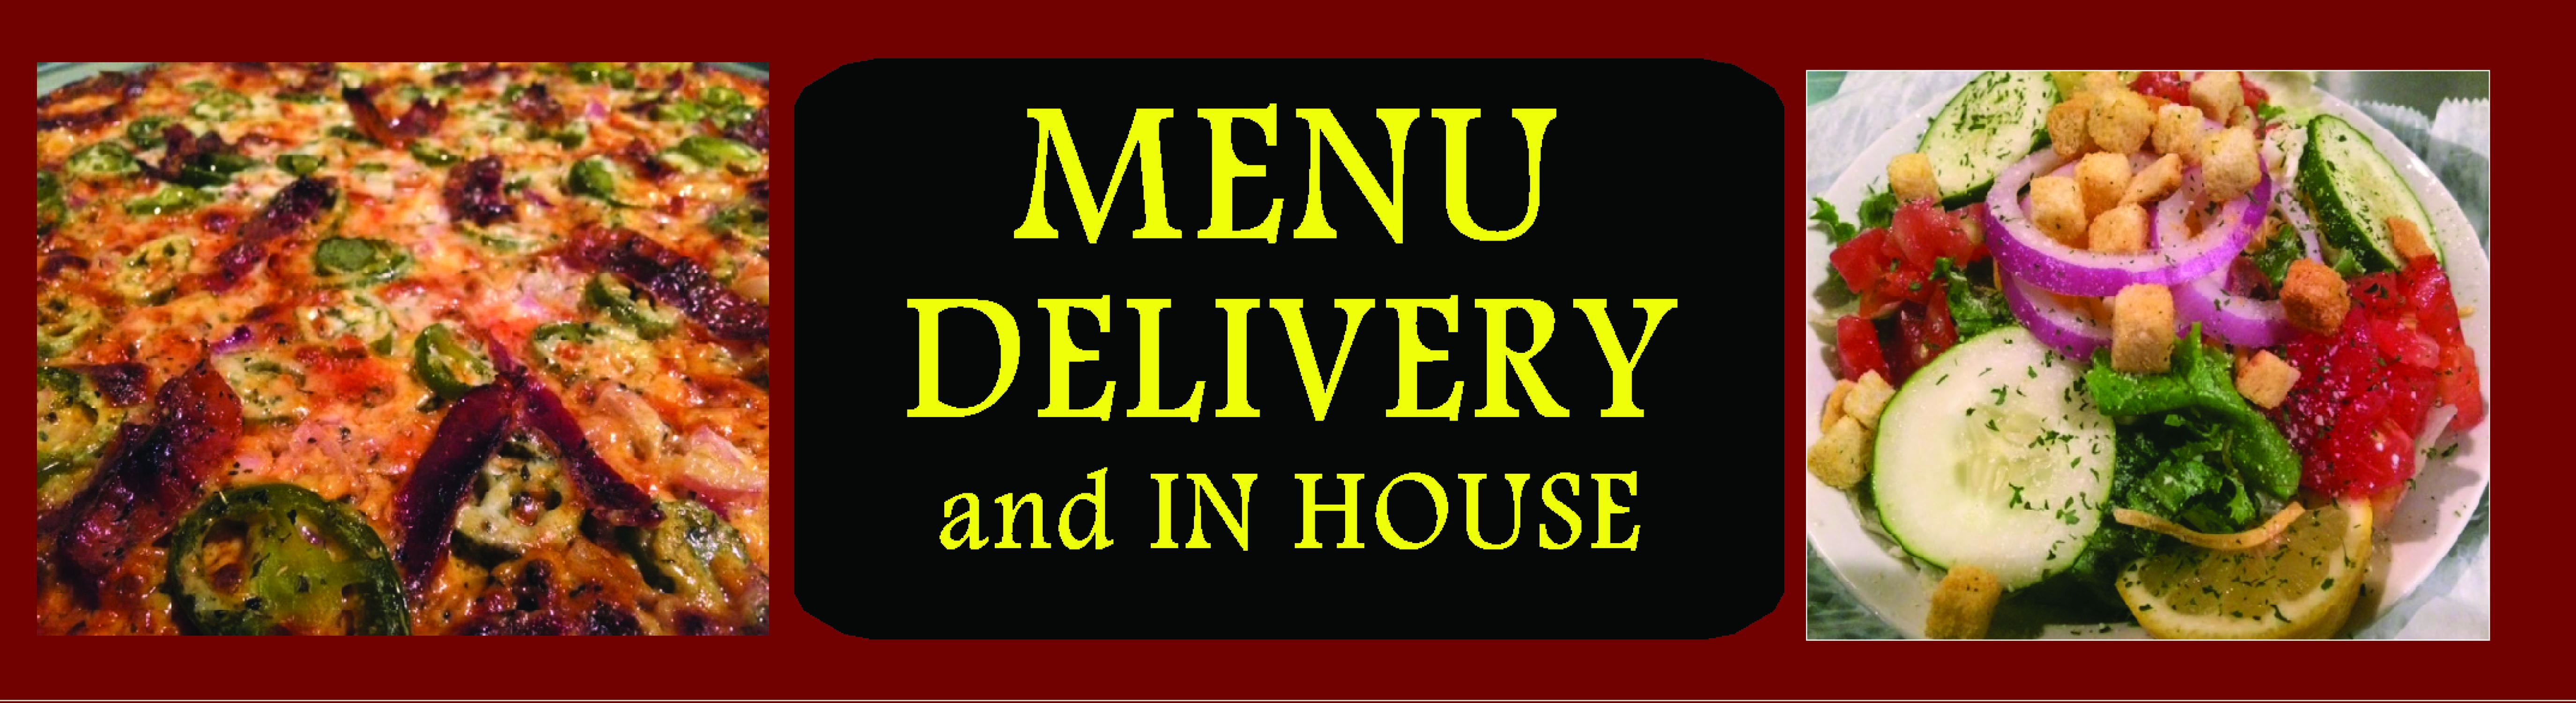 Best Food Delivery In St Louis